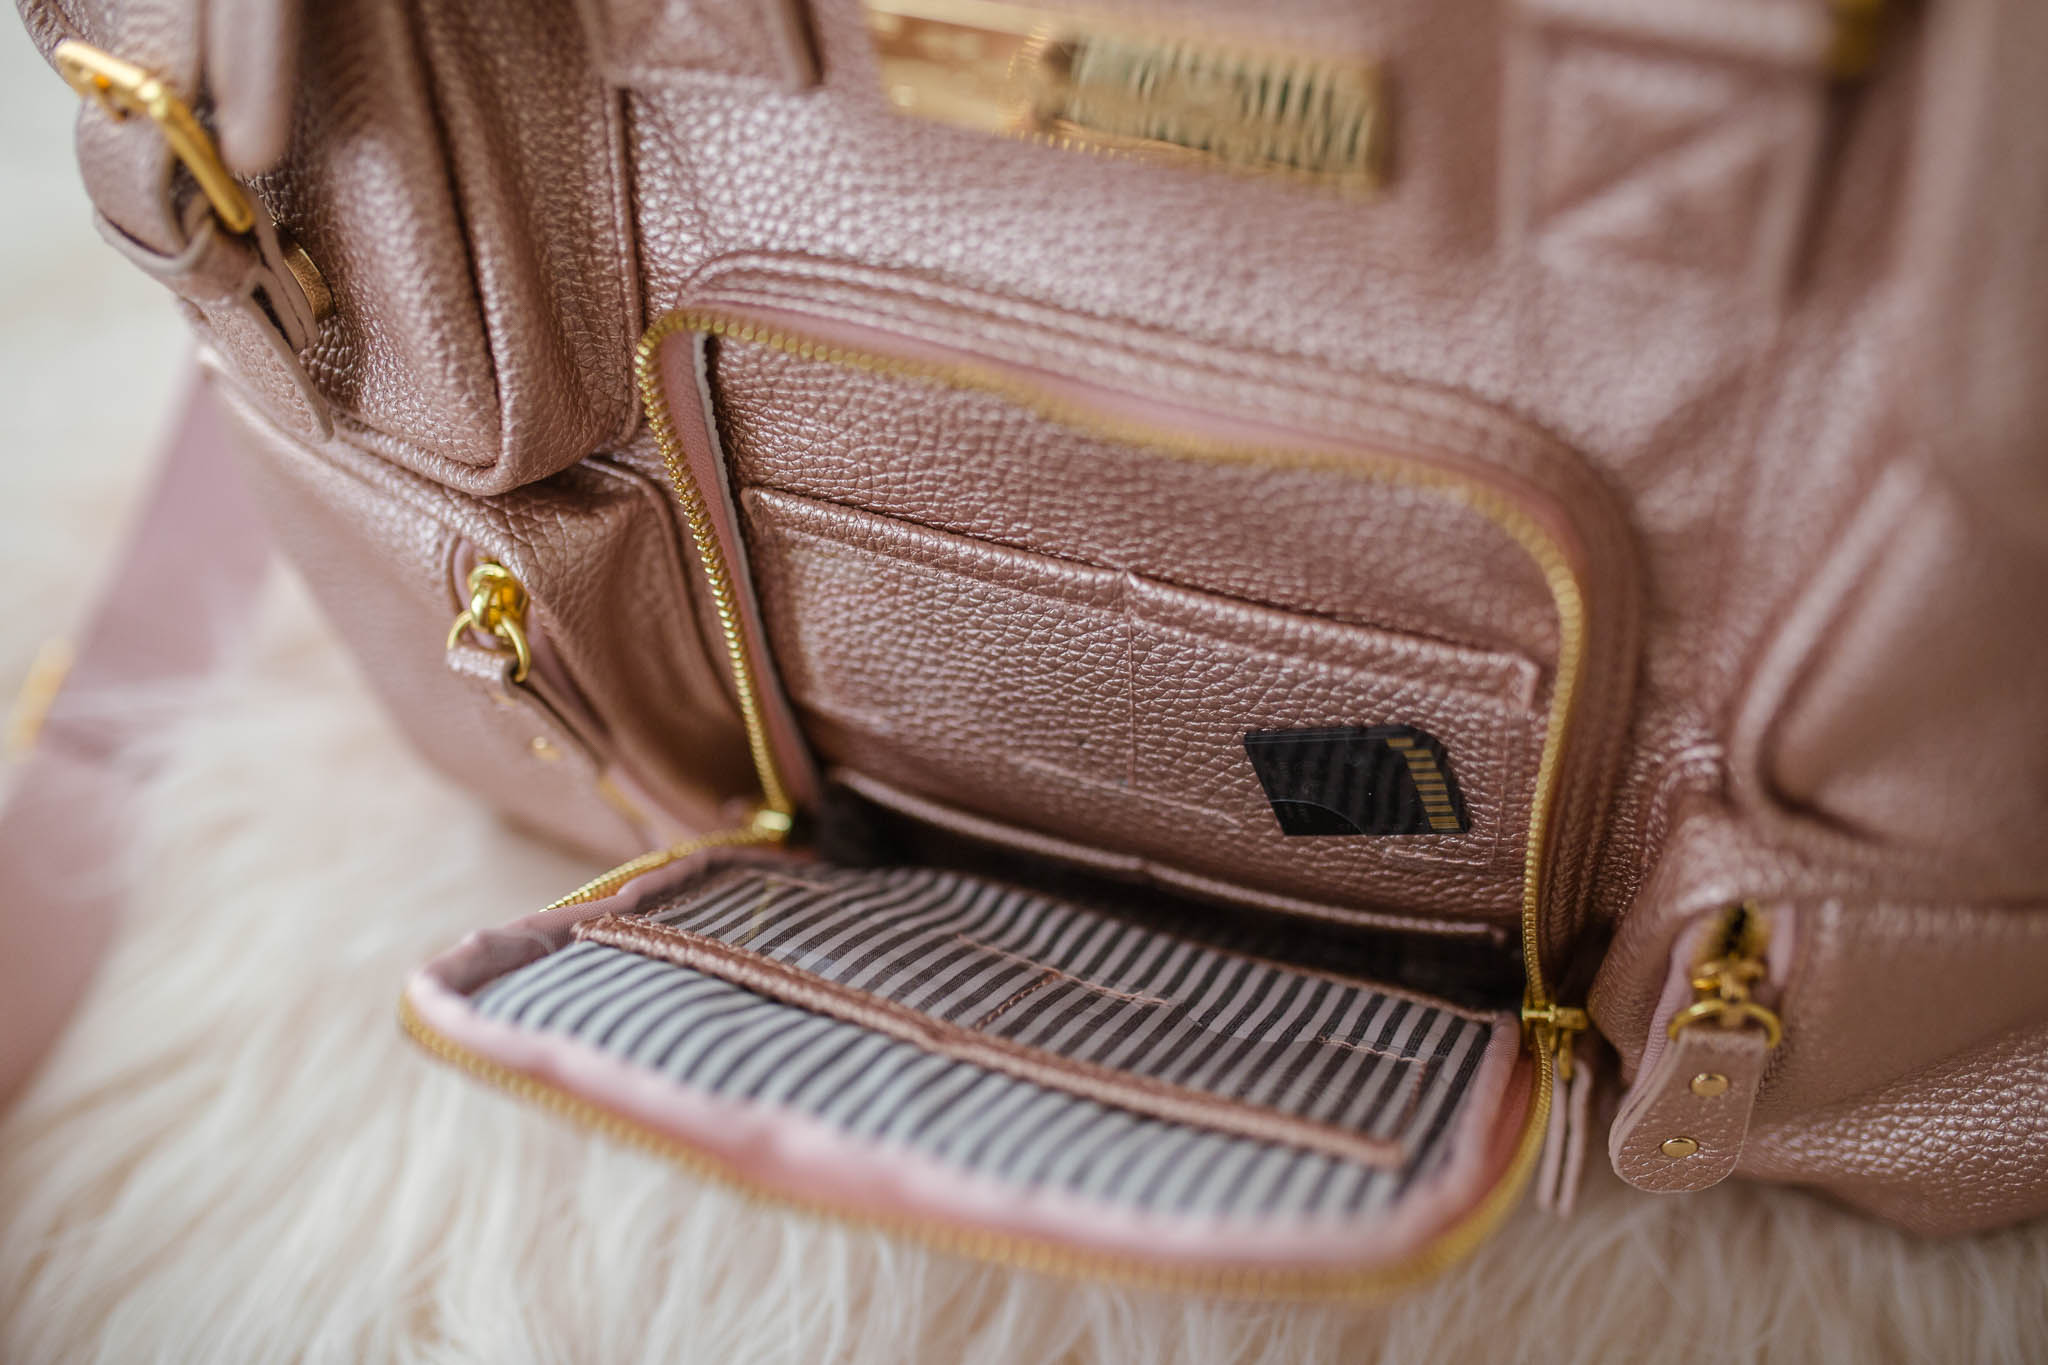 House of Flynn Evermore Camera Bag Review - Raleigh Wedding Photographer